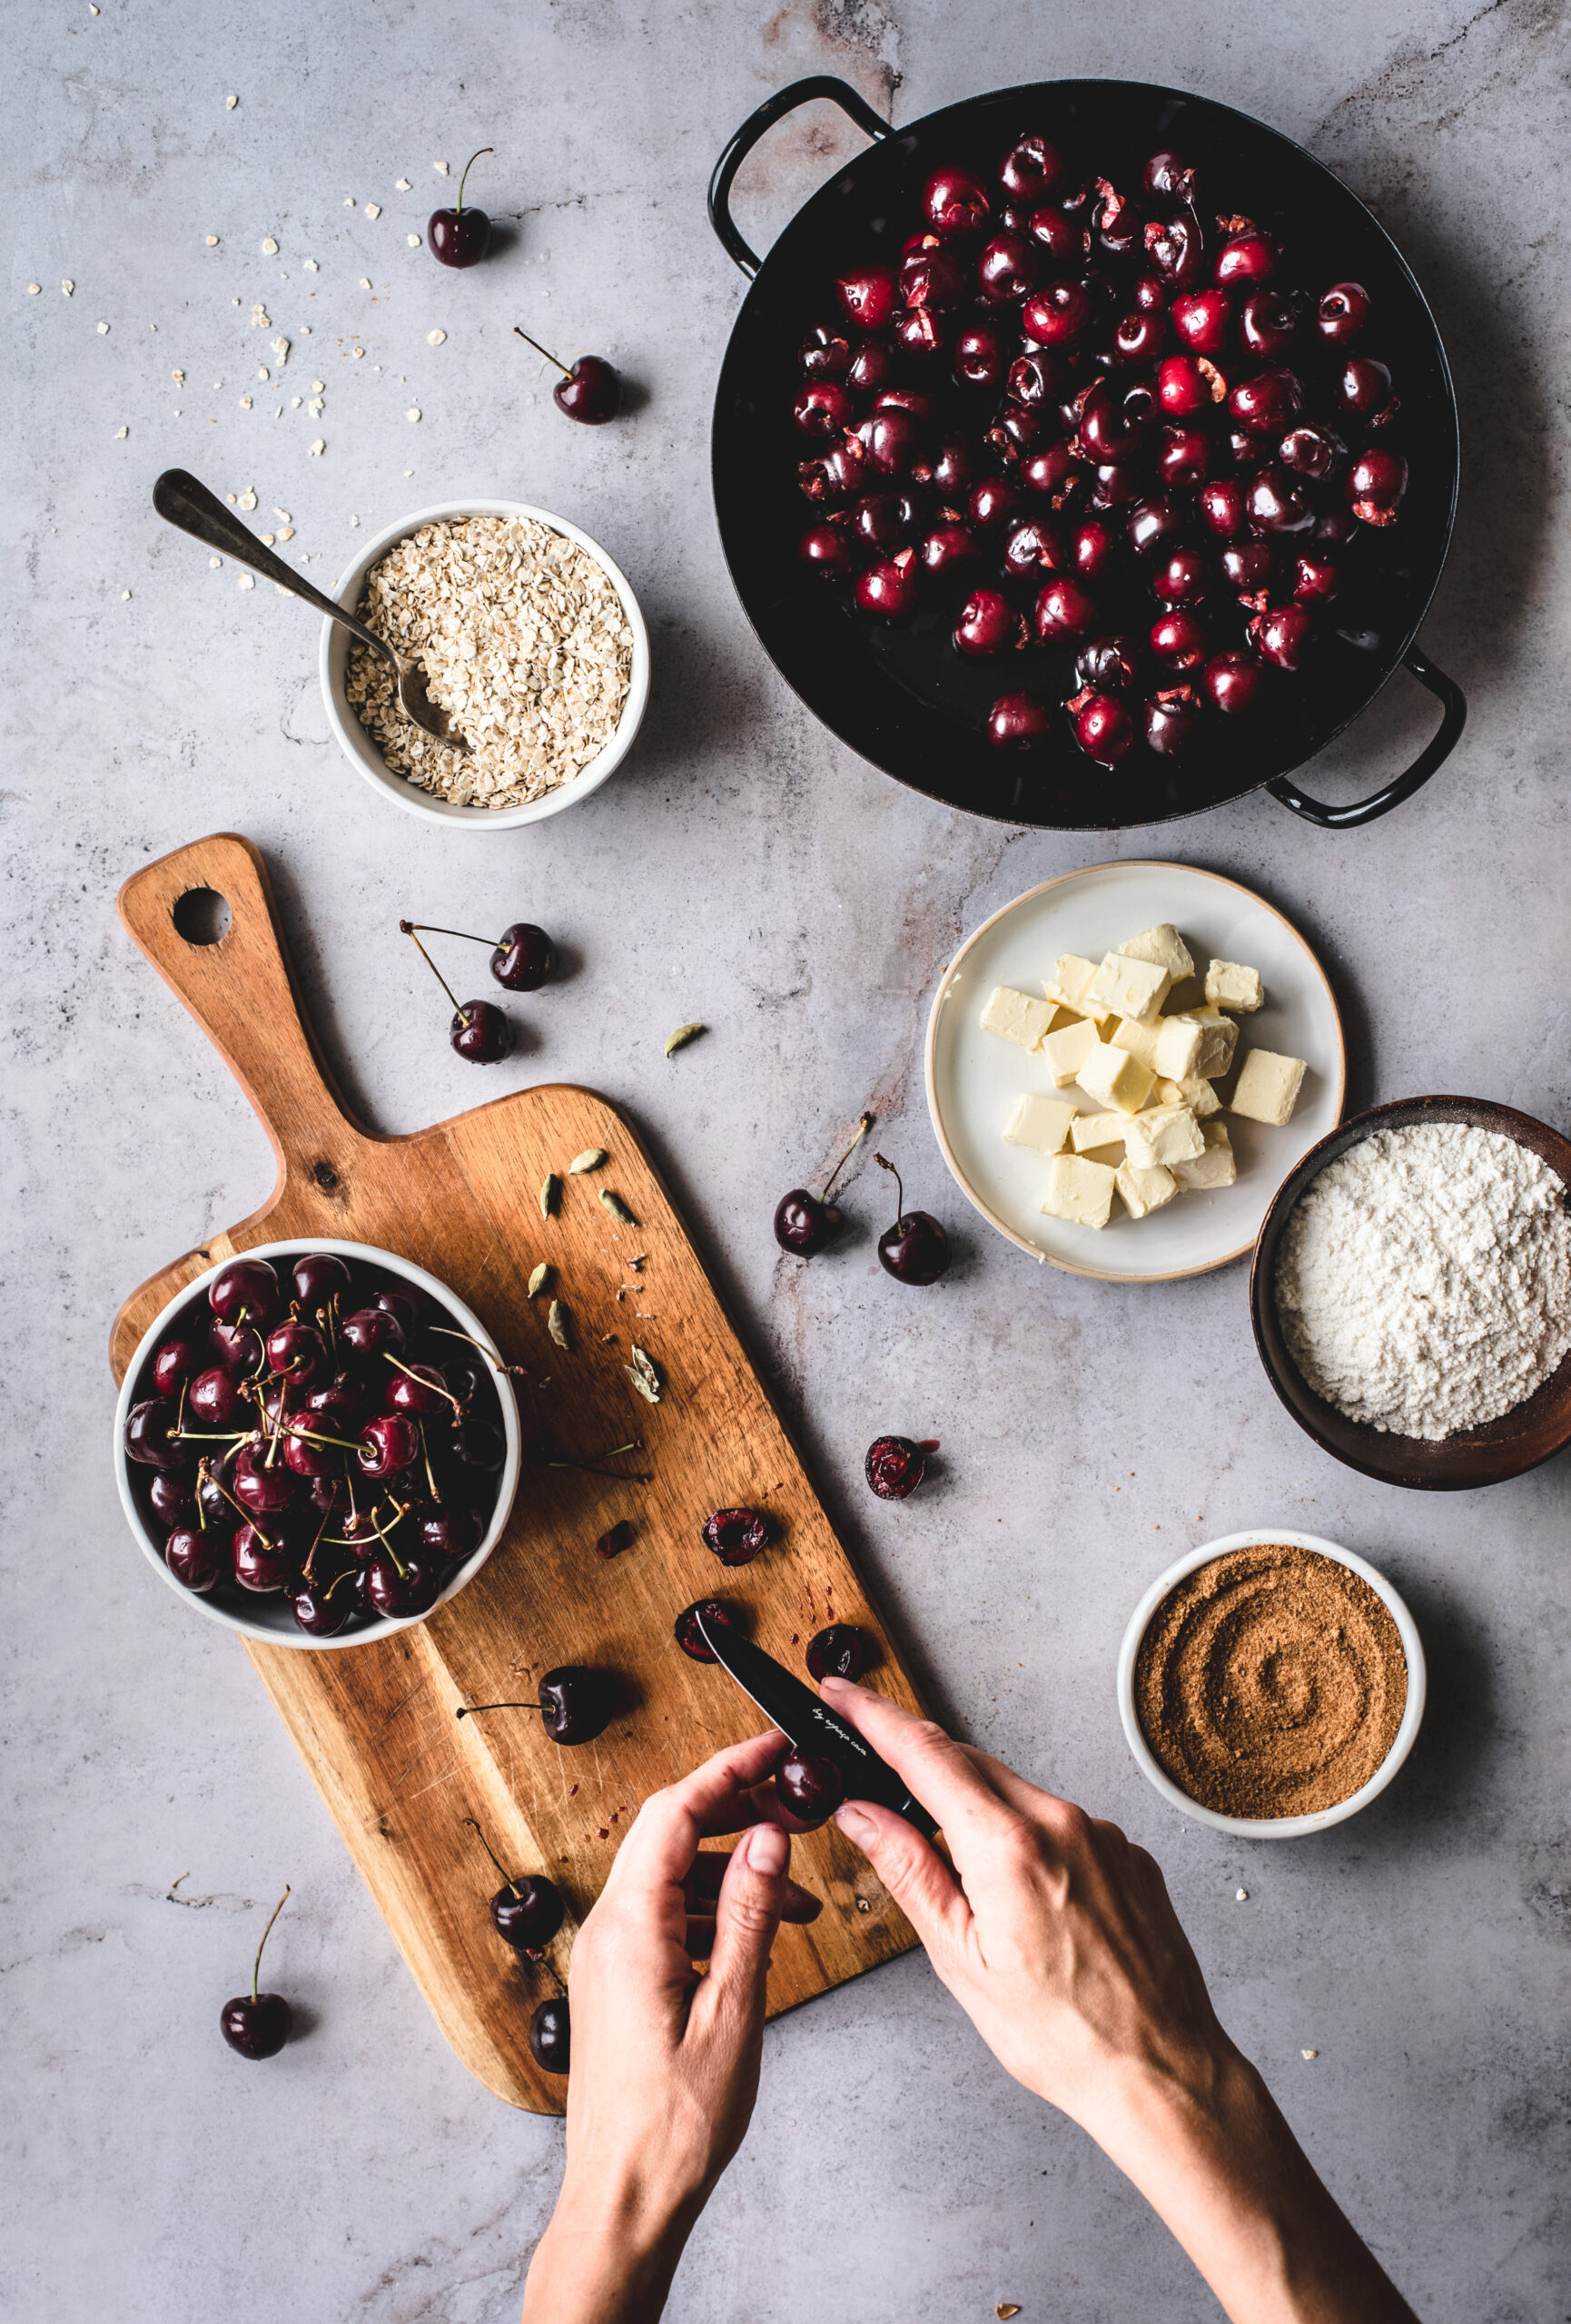 Pitting Cherries for a Cherry Cardamom Crumble